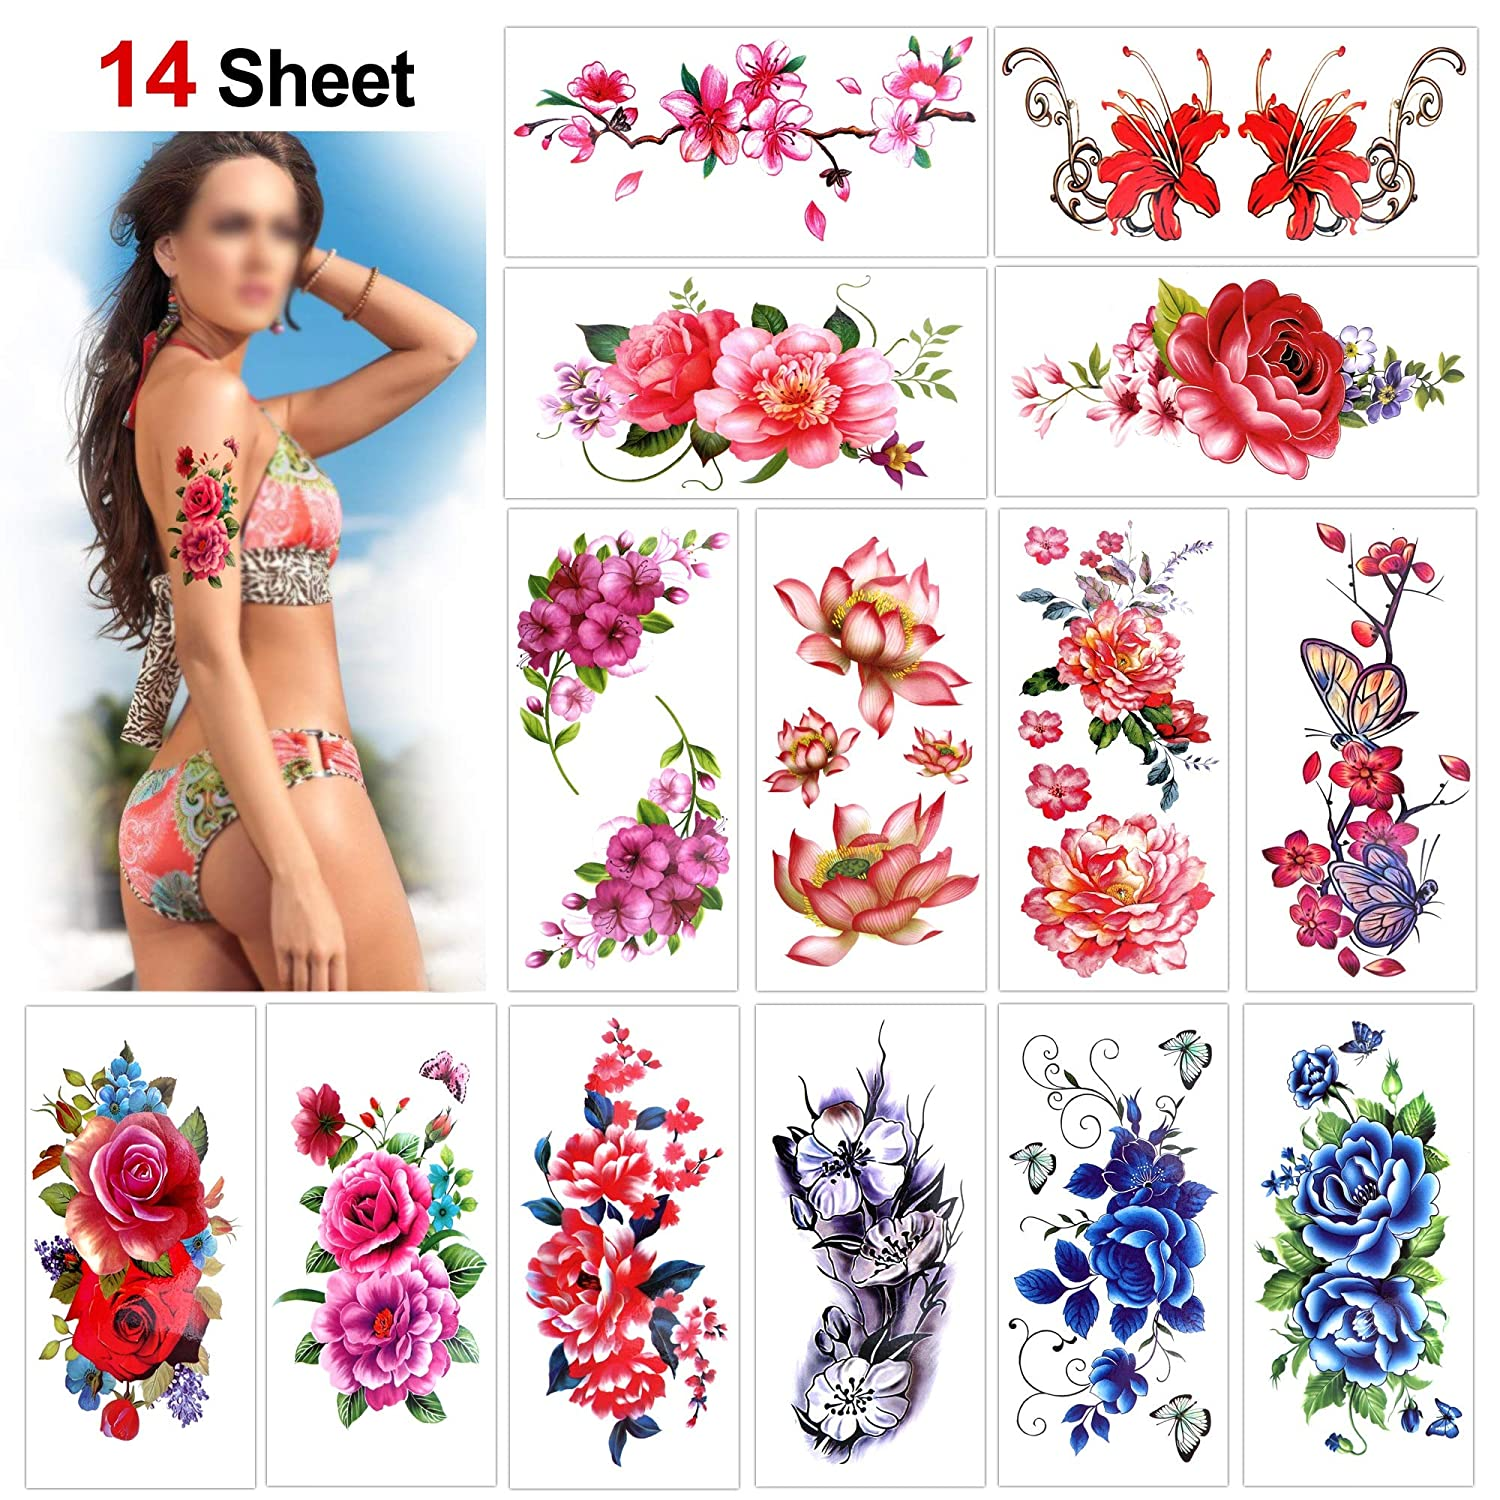 Flower Temporary Tattoos for Women Teens Girls(14 Sheets), Konsait Rose Lotus Cherry Blossoms Waterproof Temporary Tattoo Festival Flash Fake Tattoo Body Art Stickers for Summer Beach Pool Party